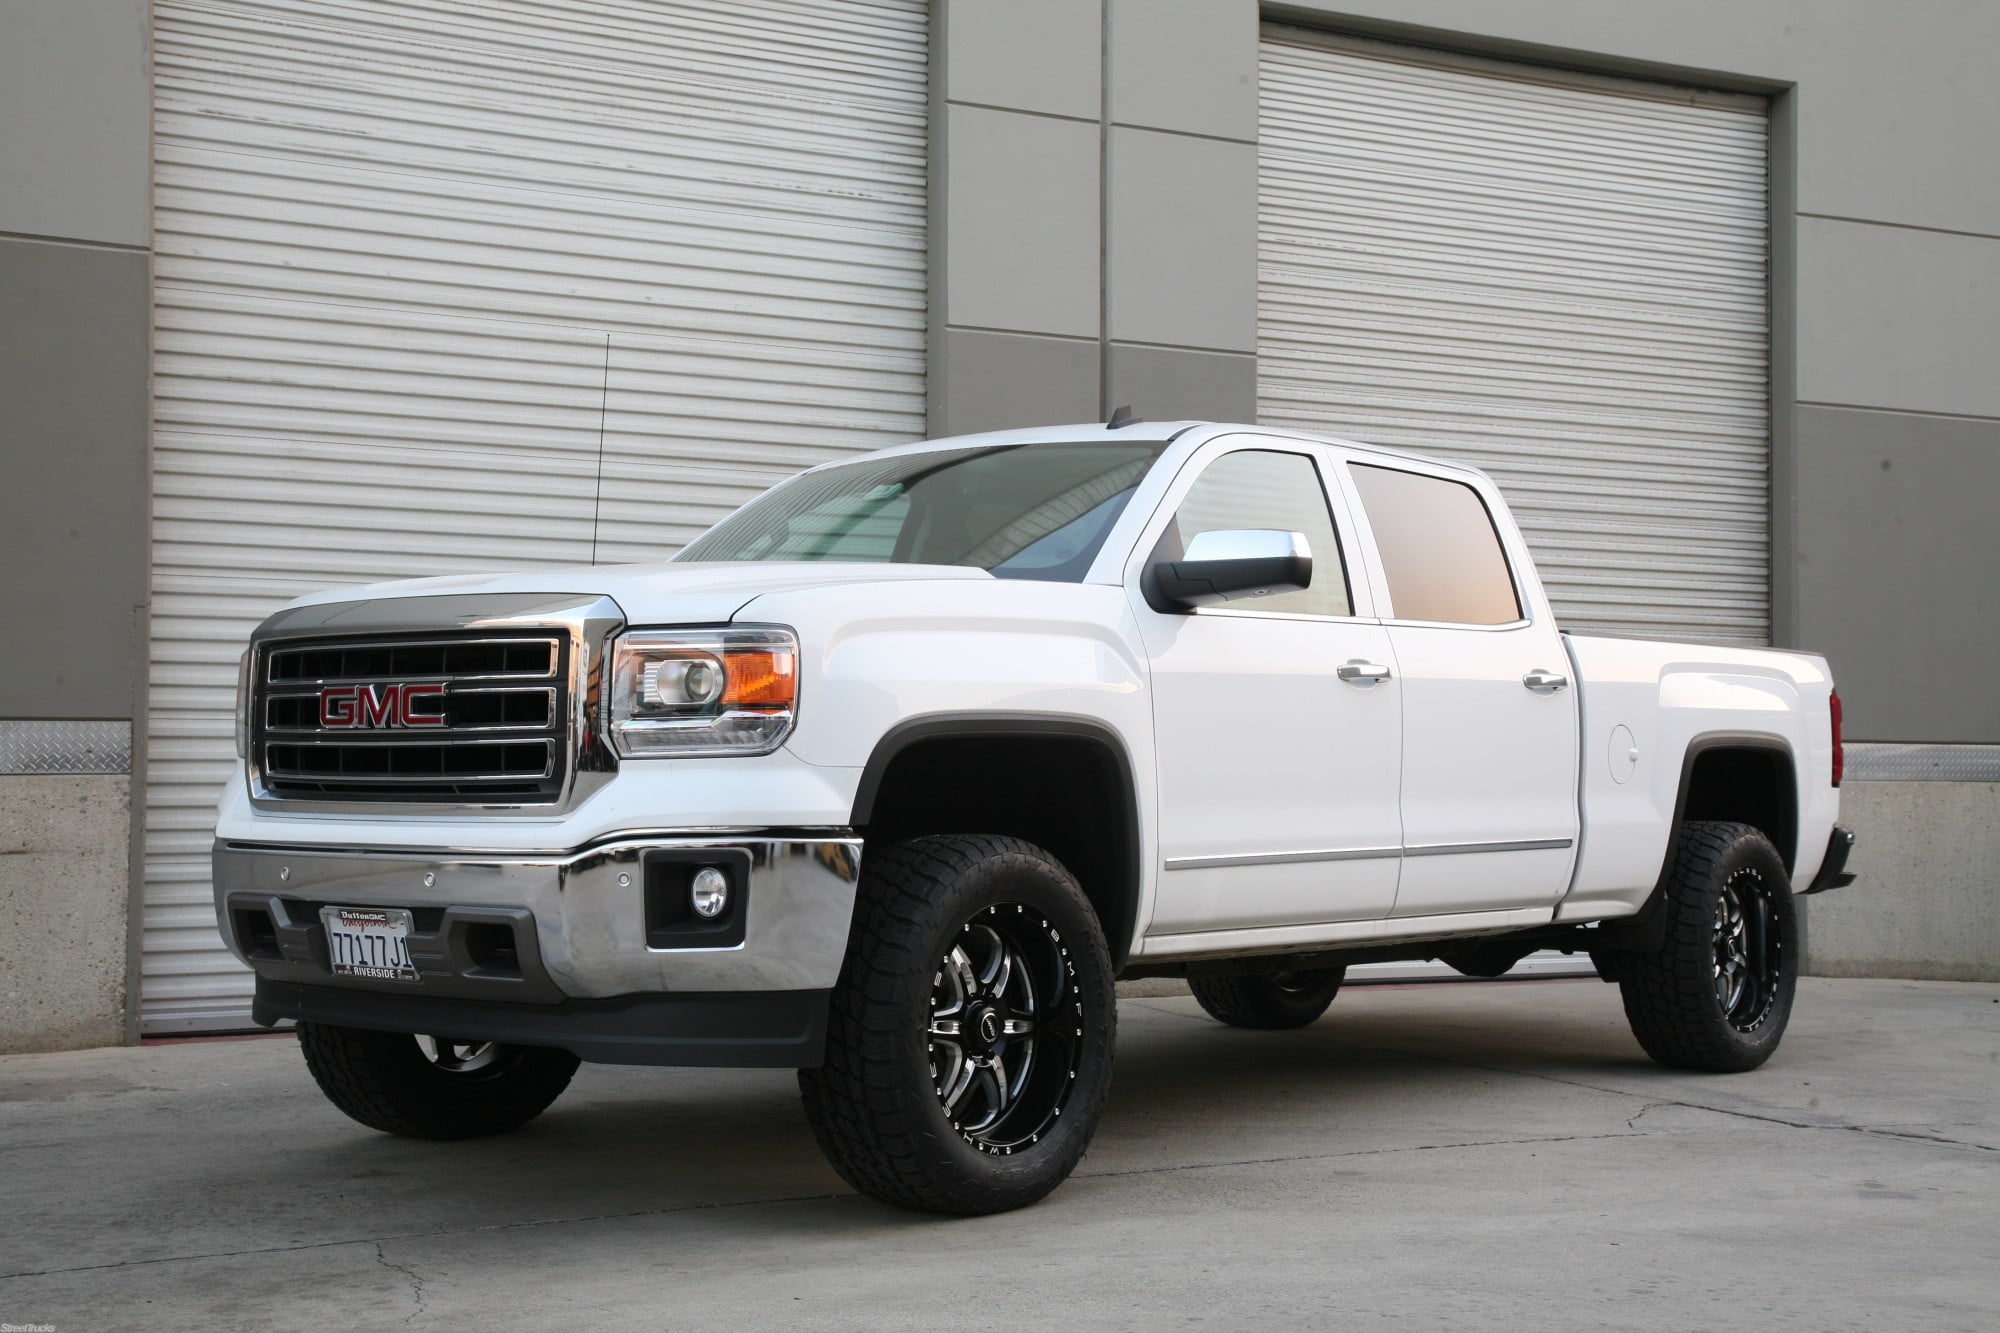 2014 gmc sierra lifted white. lifted gmc sierra high resolution wallpaper 2014 gmc white f